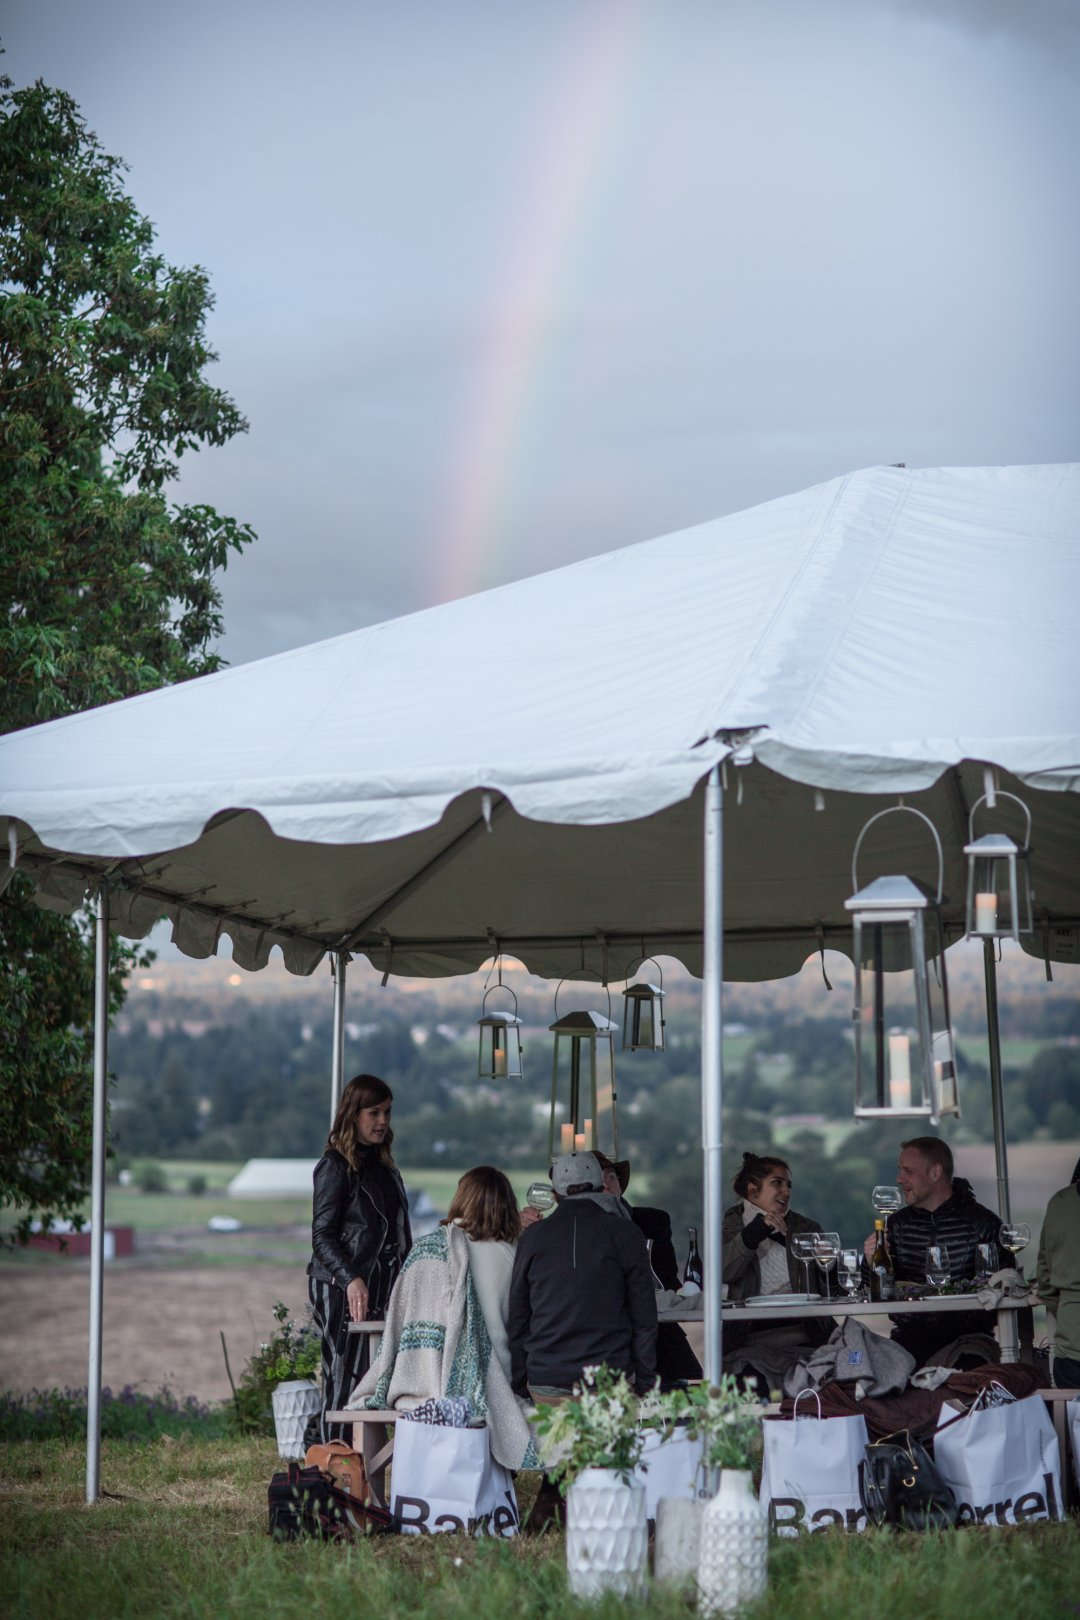 Tent with people underneath and rainbow in background